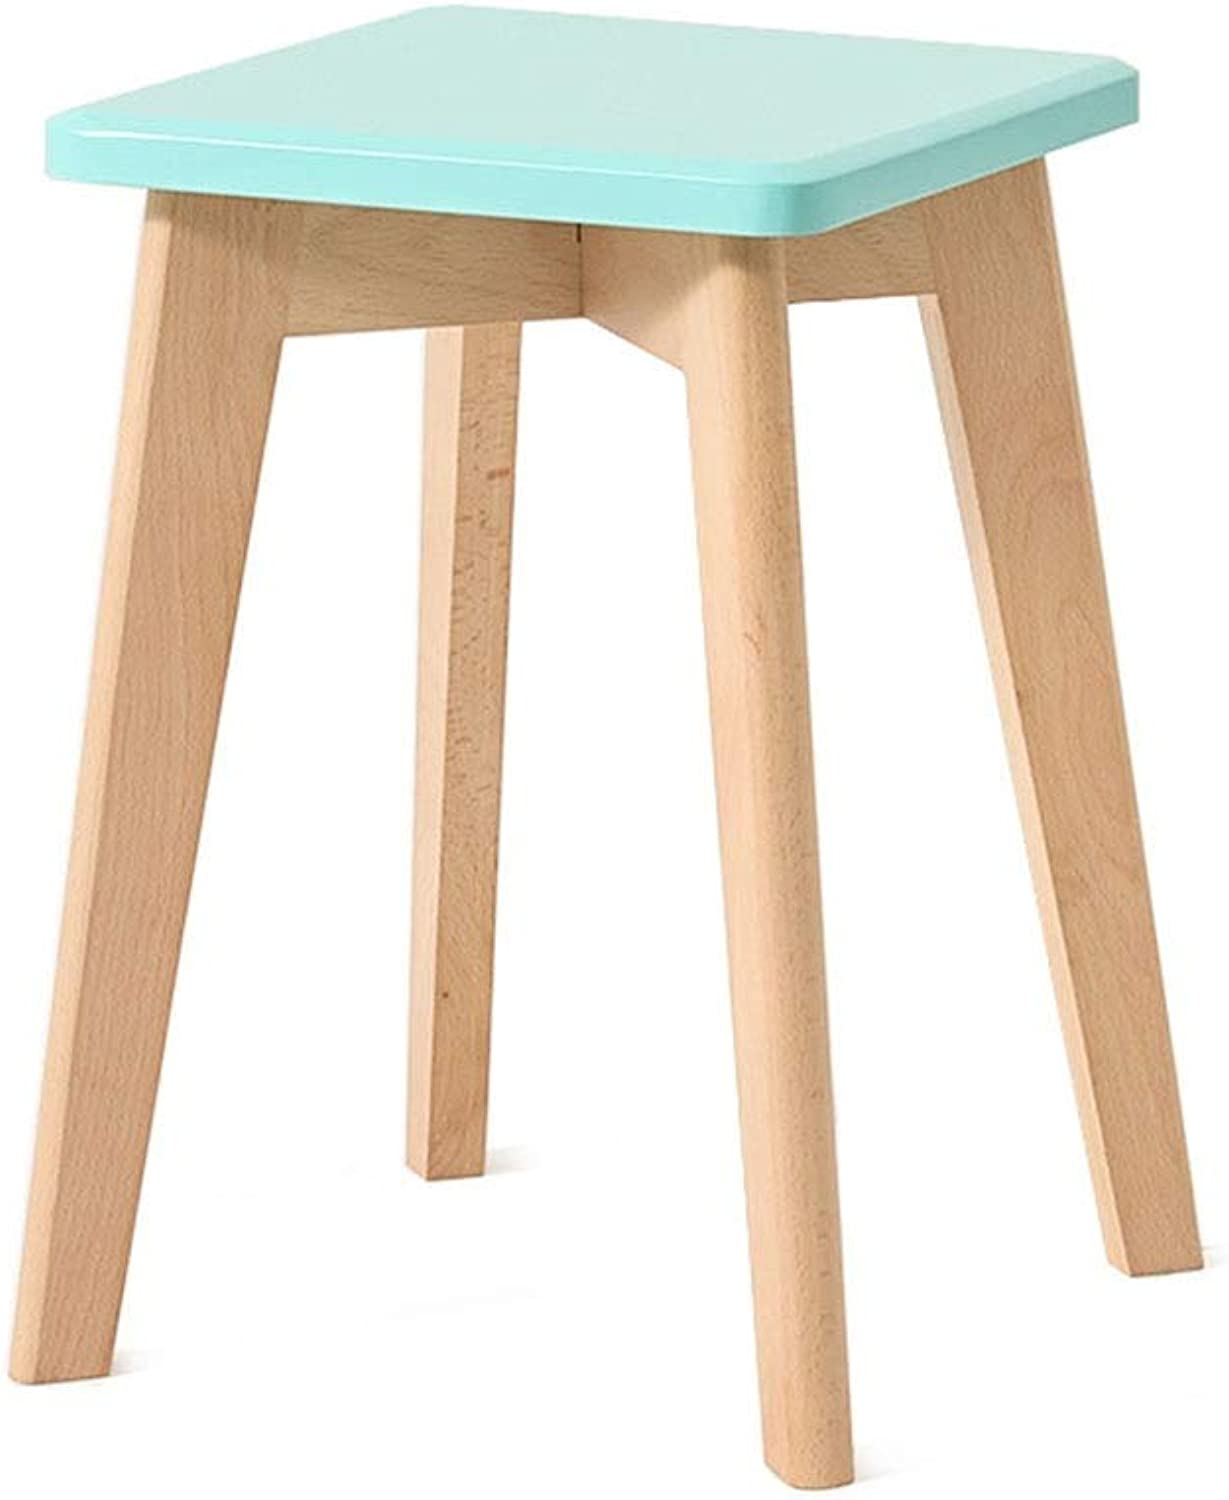 Solid Wood Stool, Dining Table Stool Dressing Stool, Living Room Stool, Small Bench Pure Solid Wood (color   bluee)